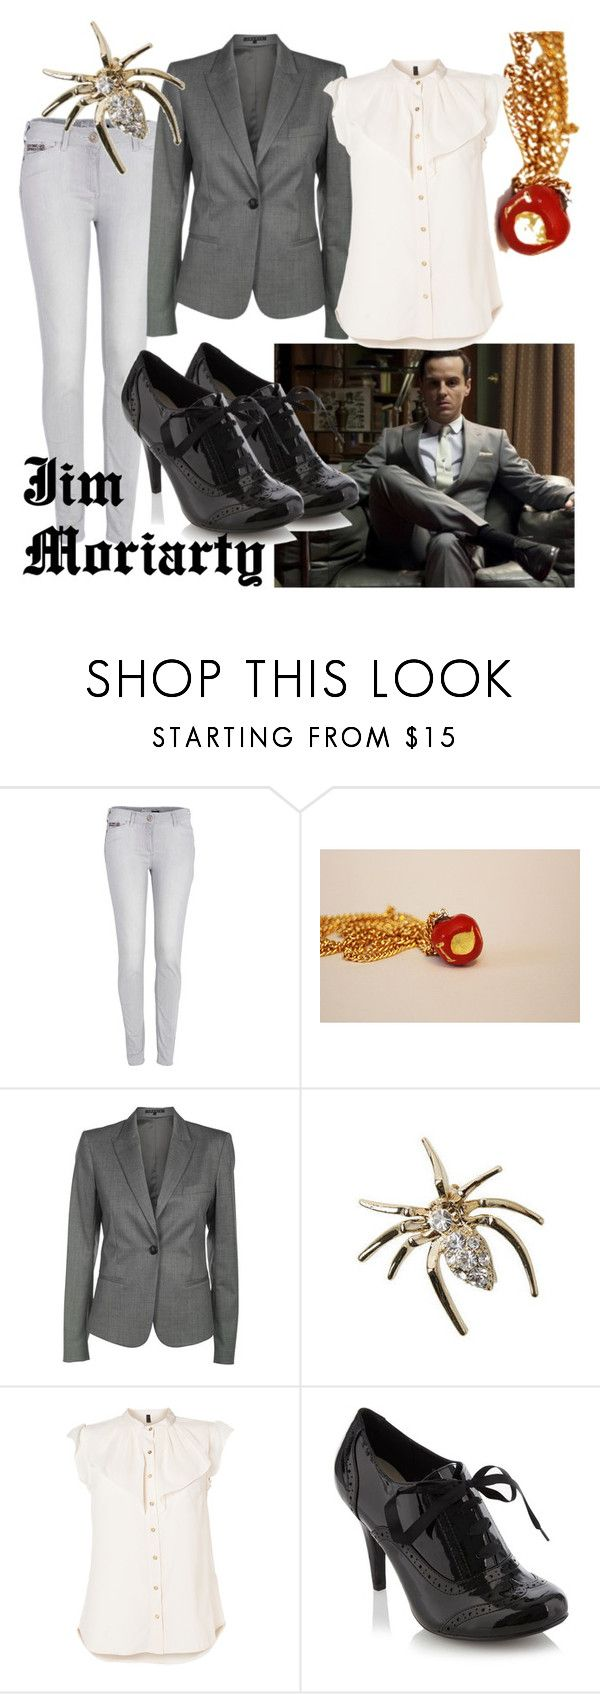 """Jim Moriarty Reichenbach Fall"" by fandom-wardrobes ❤ liked on Polyvore featuring River Island, Theory, Briolette, Reichenbach, Vero Moda, jim moriarty, james moriarty, sherlock and reichenbach fall"